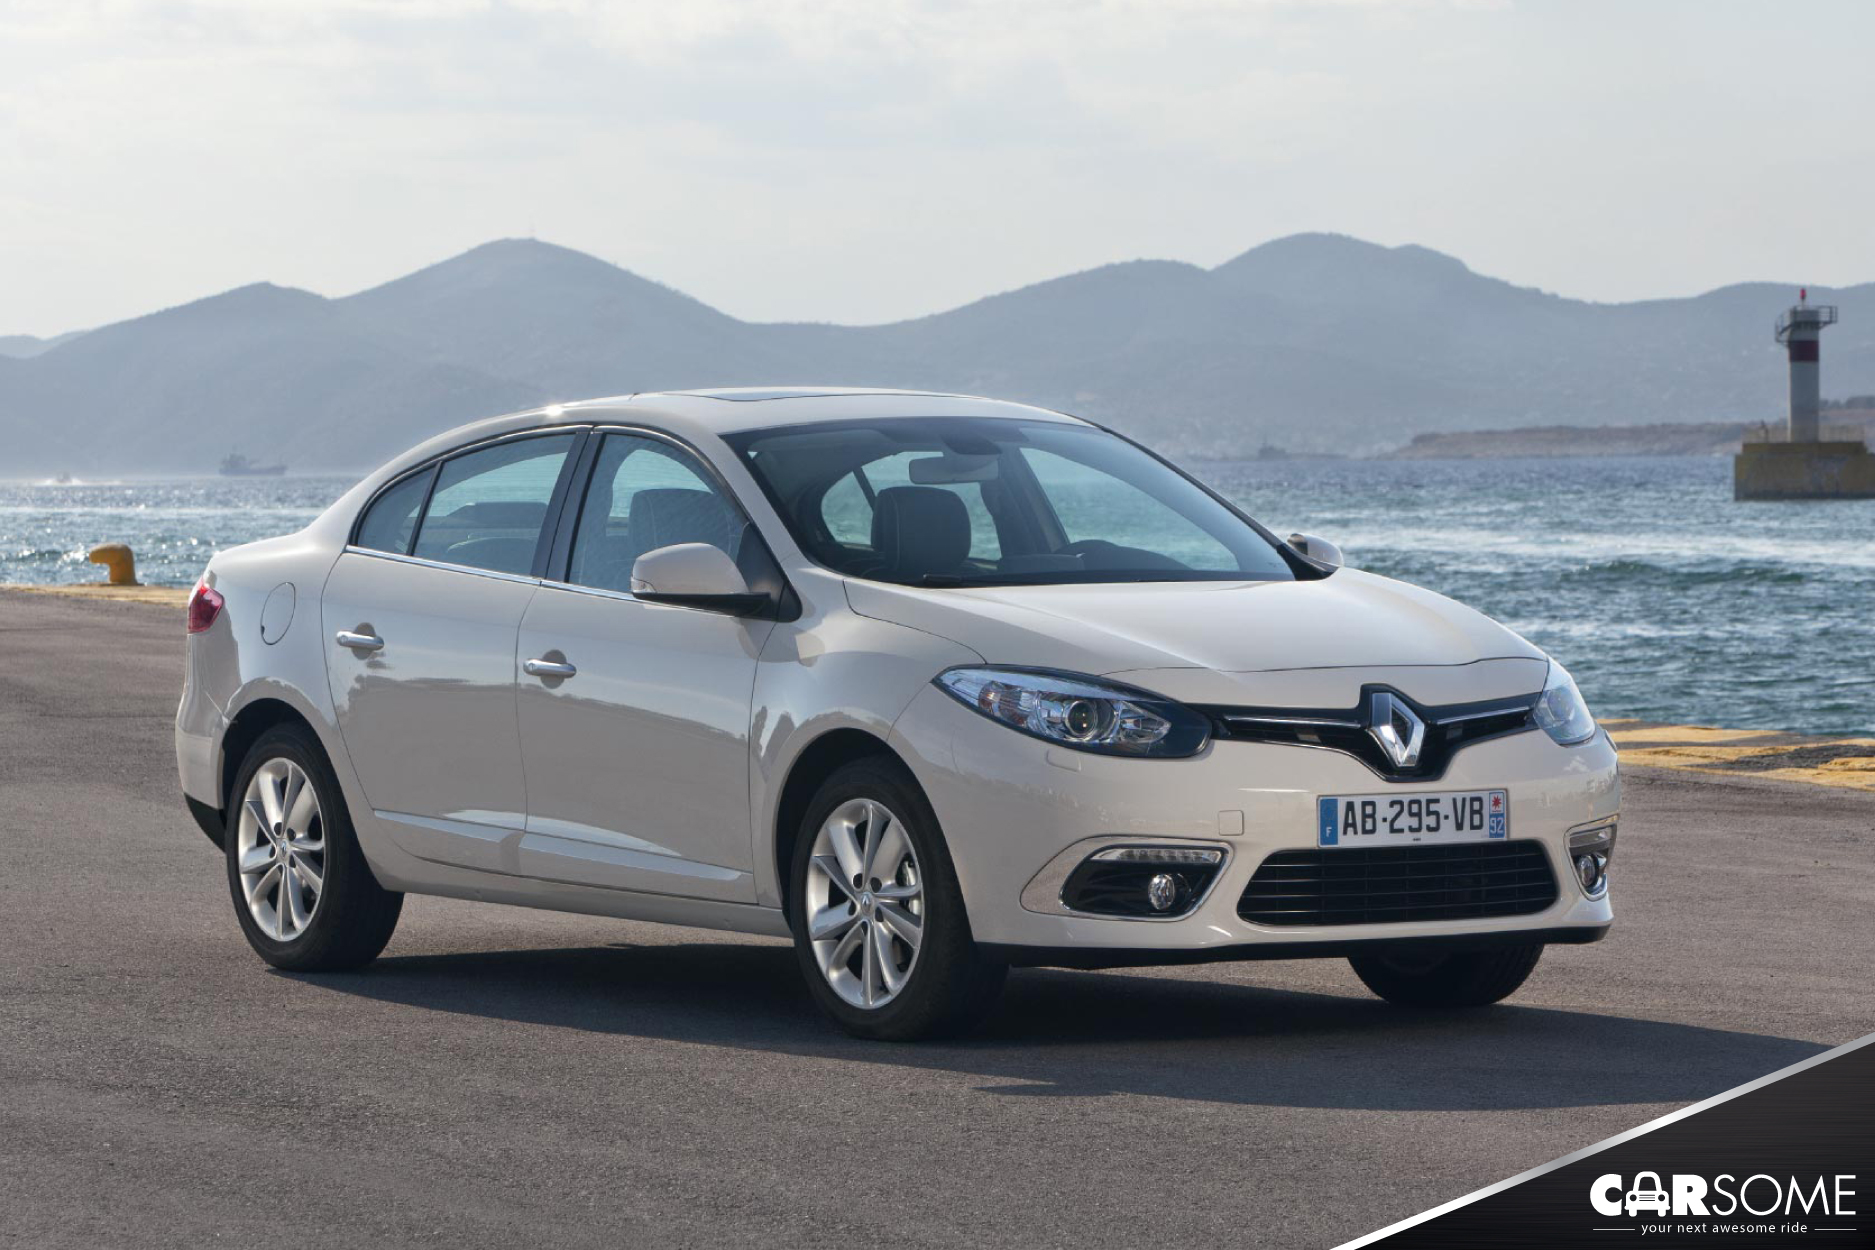 THE FRENCH ARE BACK IN THE GAME: Peugeot 408 vs Renault